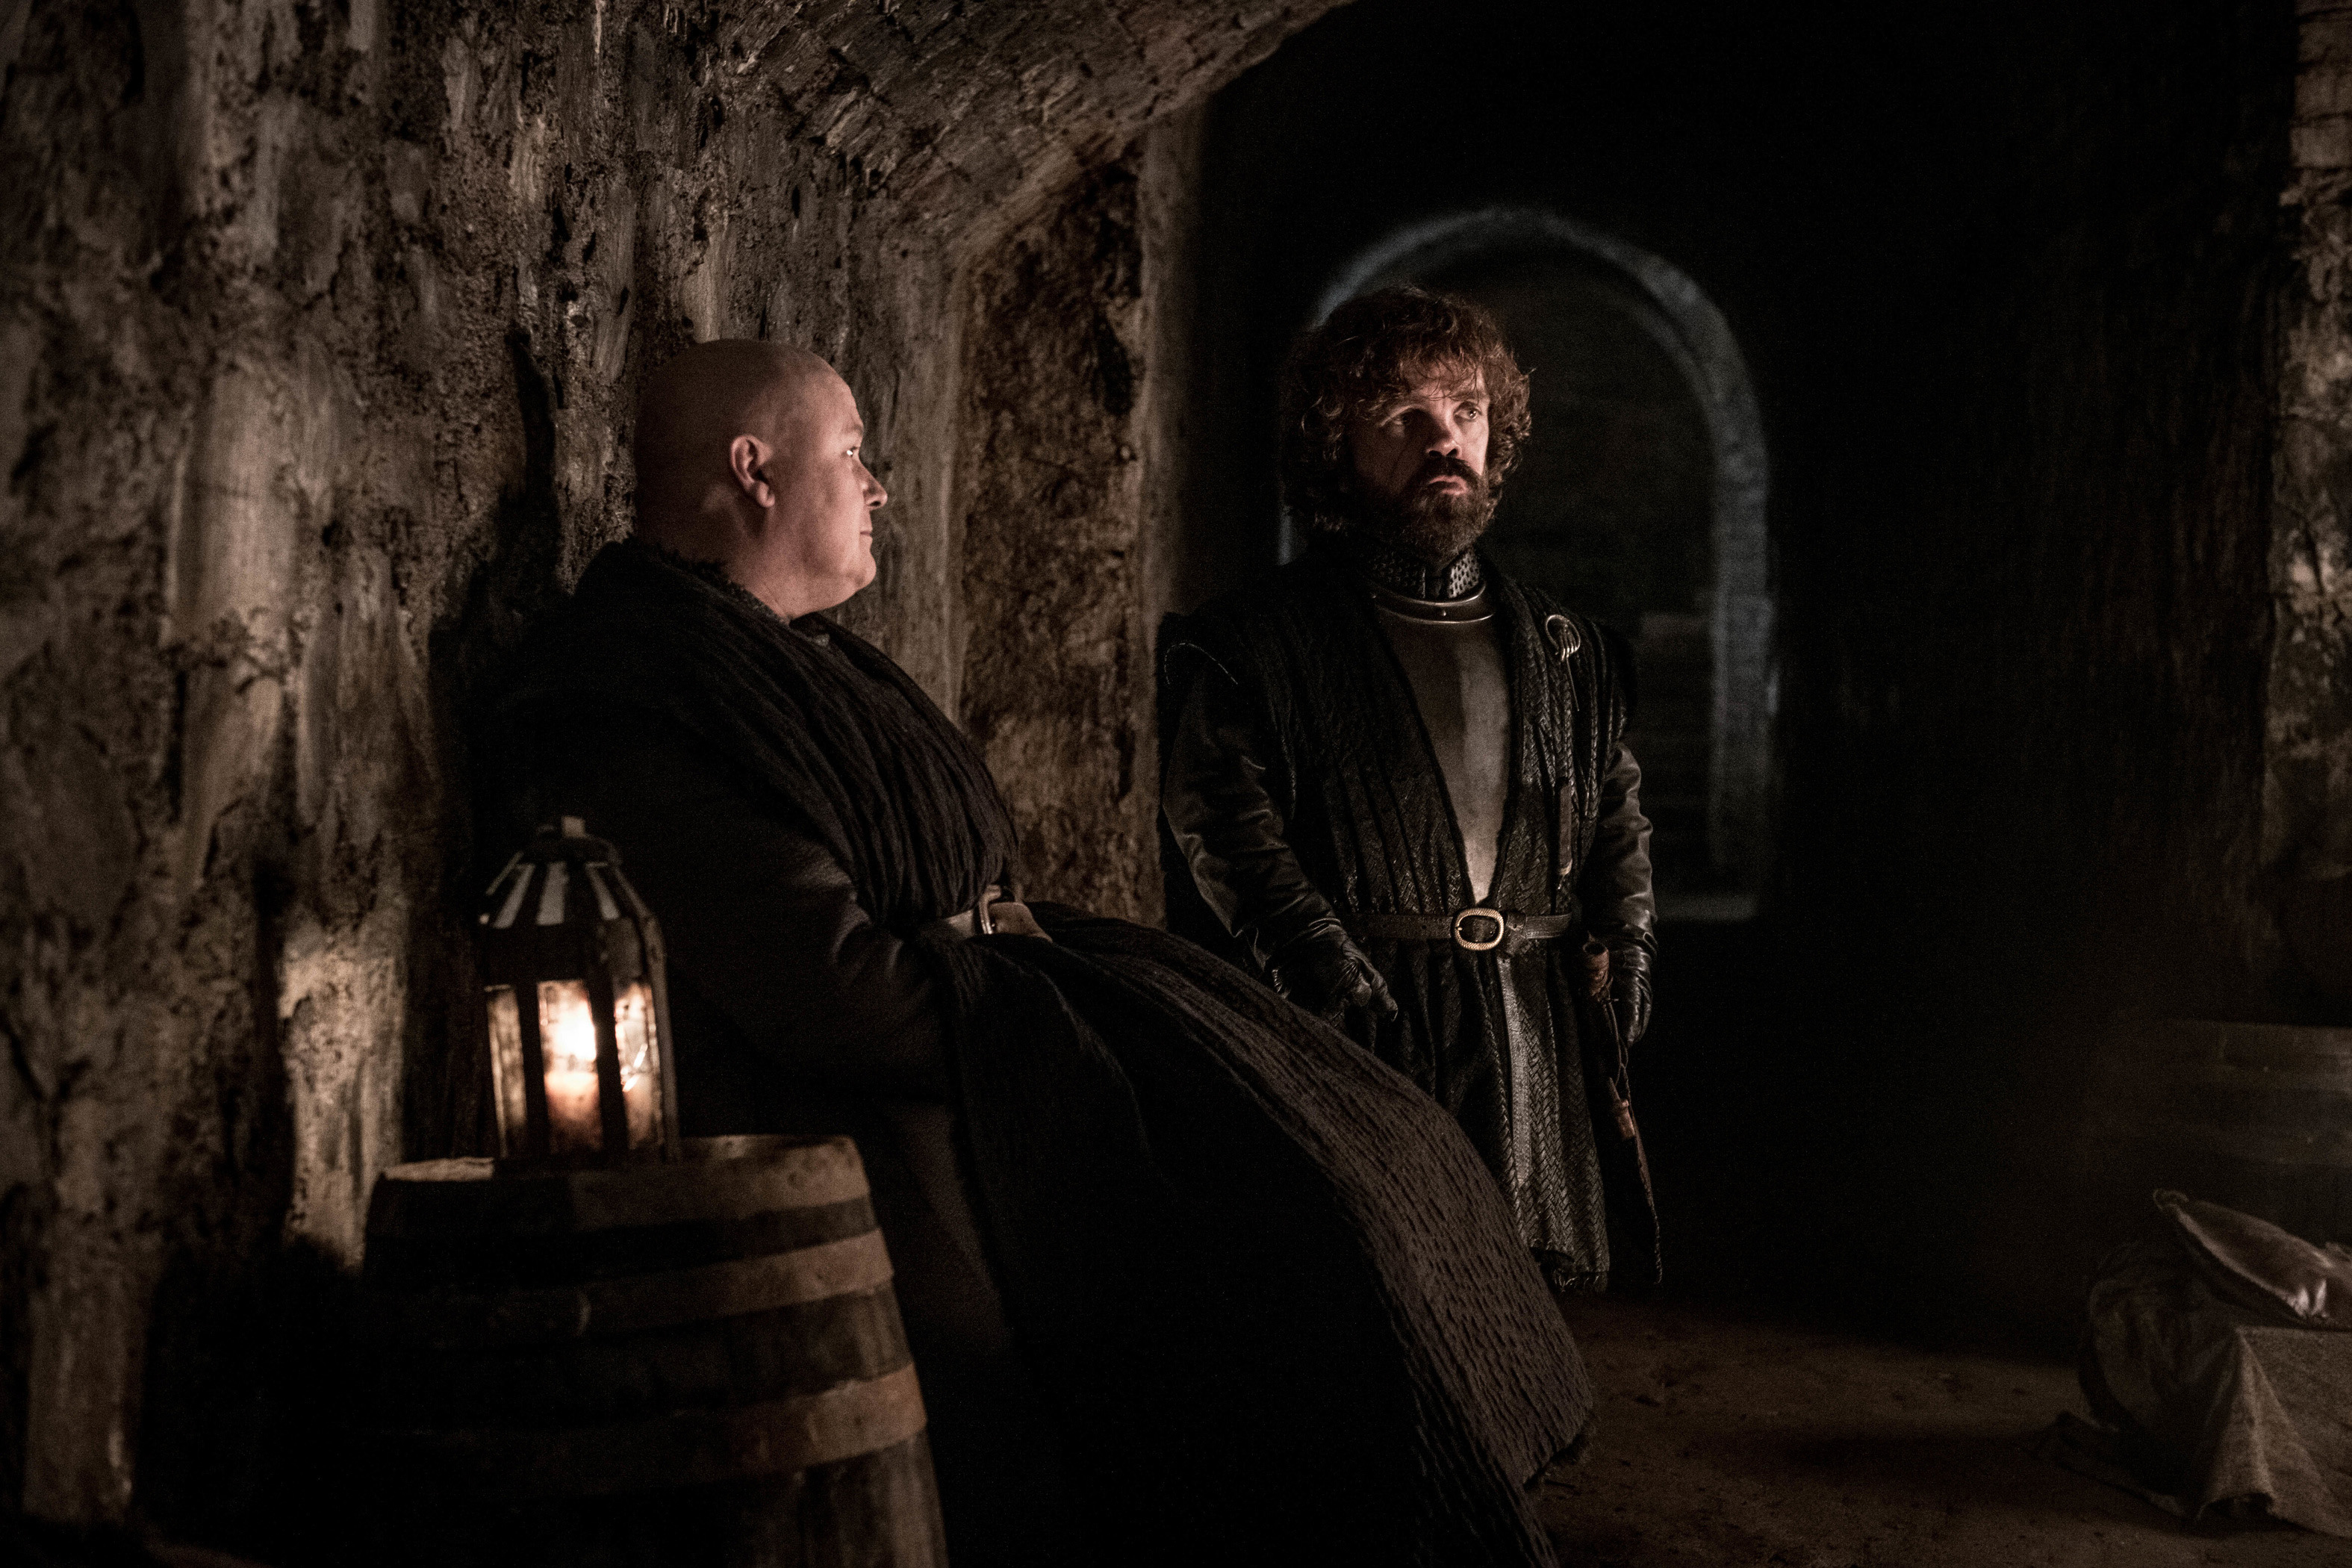 8x03 - The Long Night - Varys and Tyrion